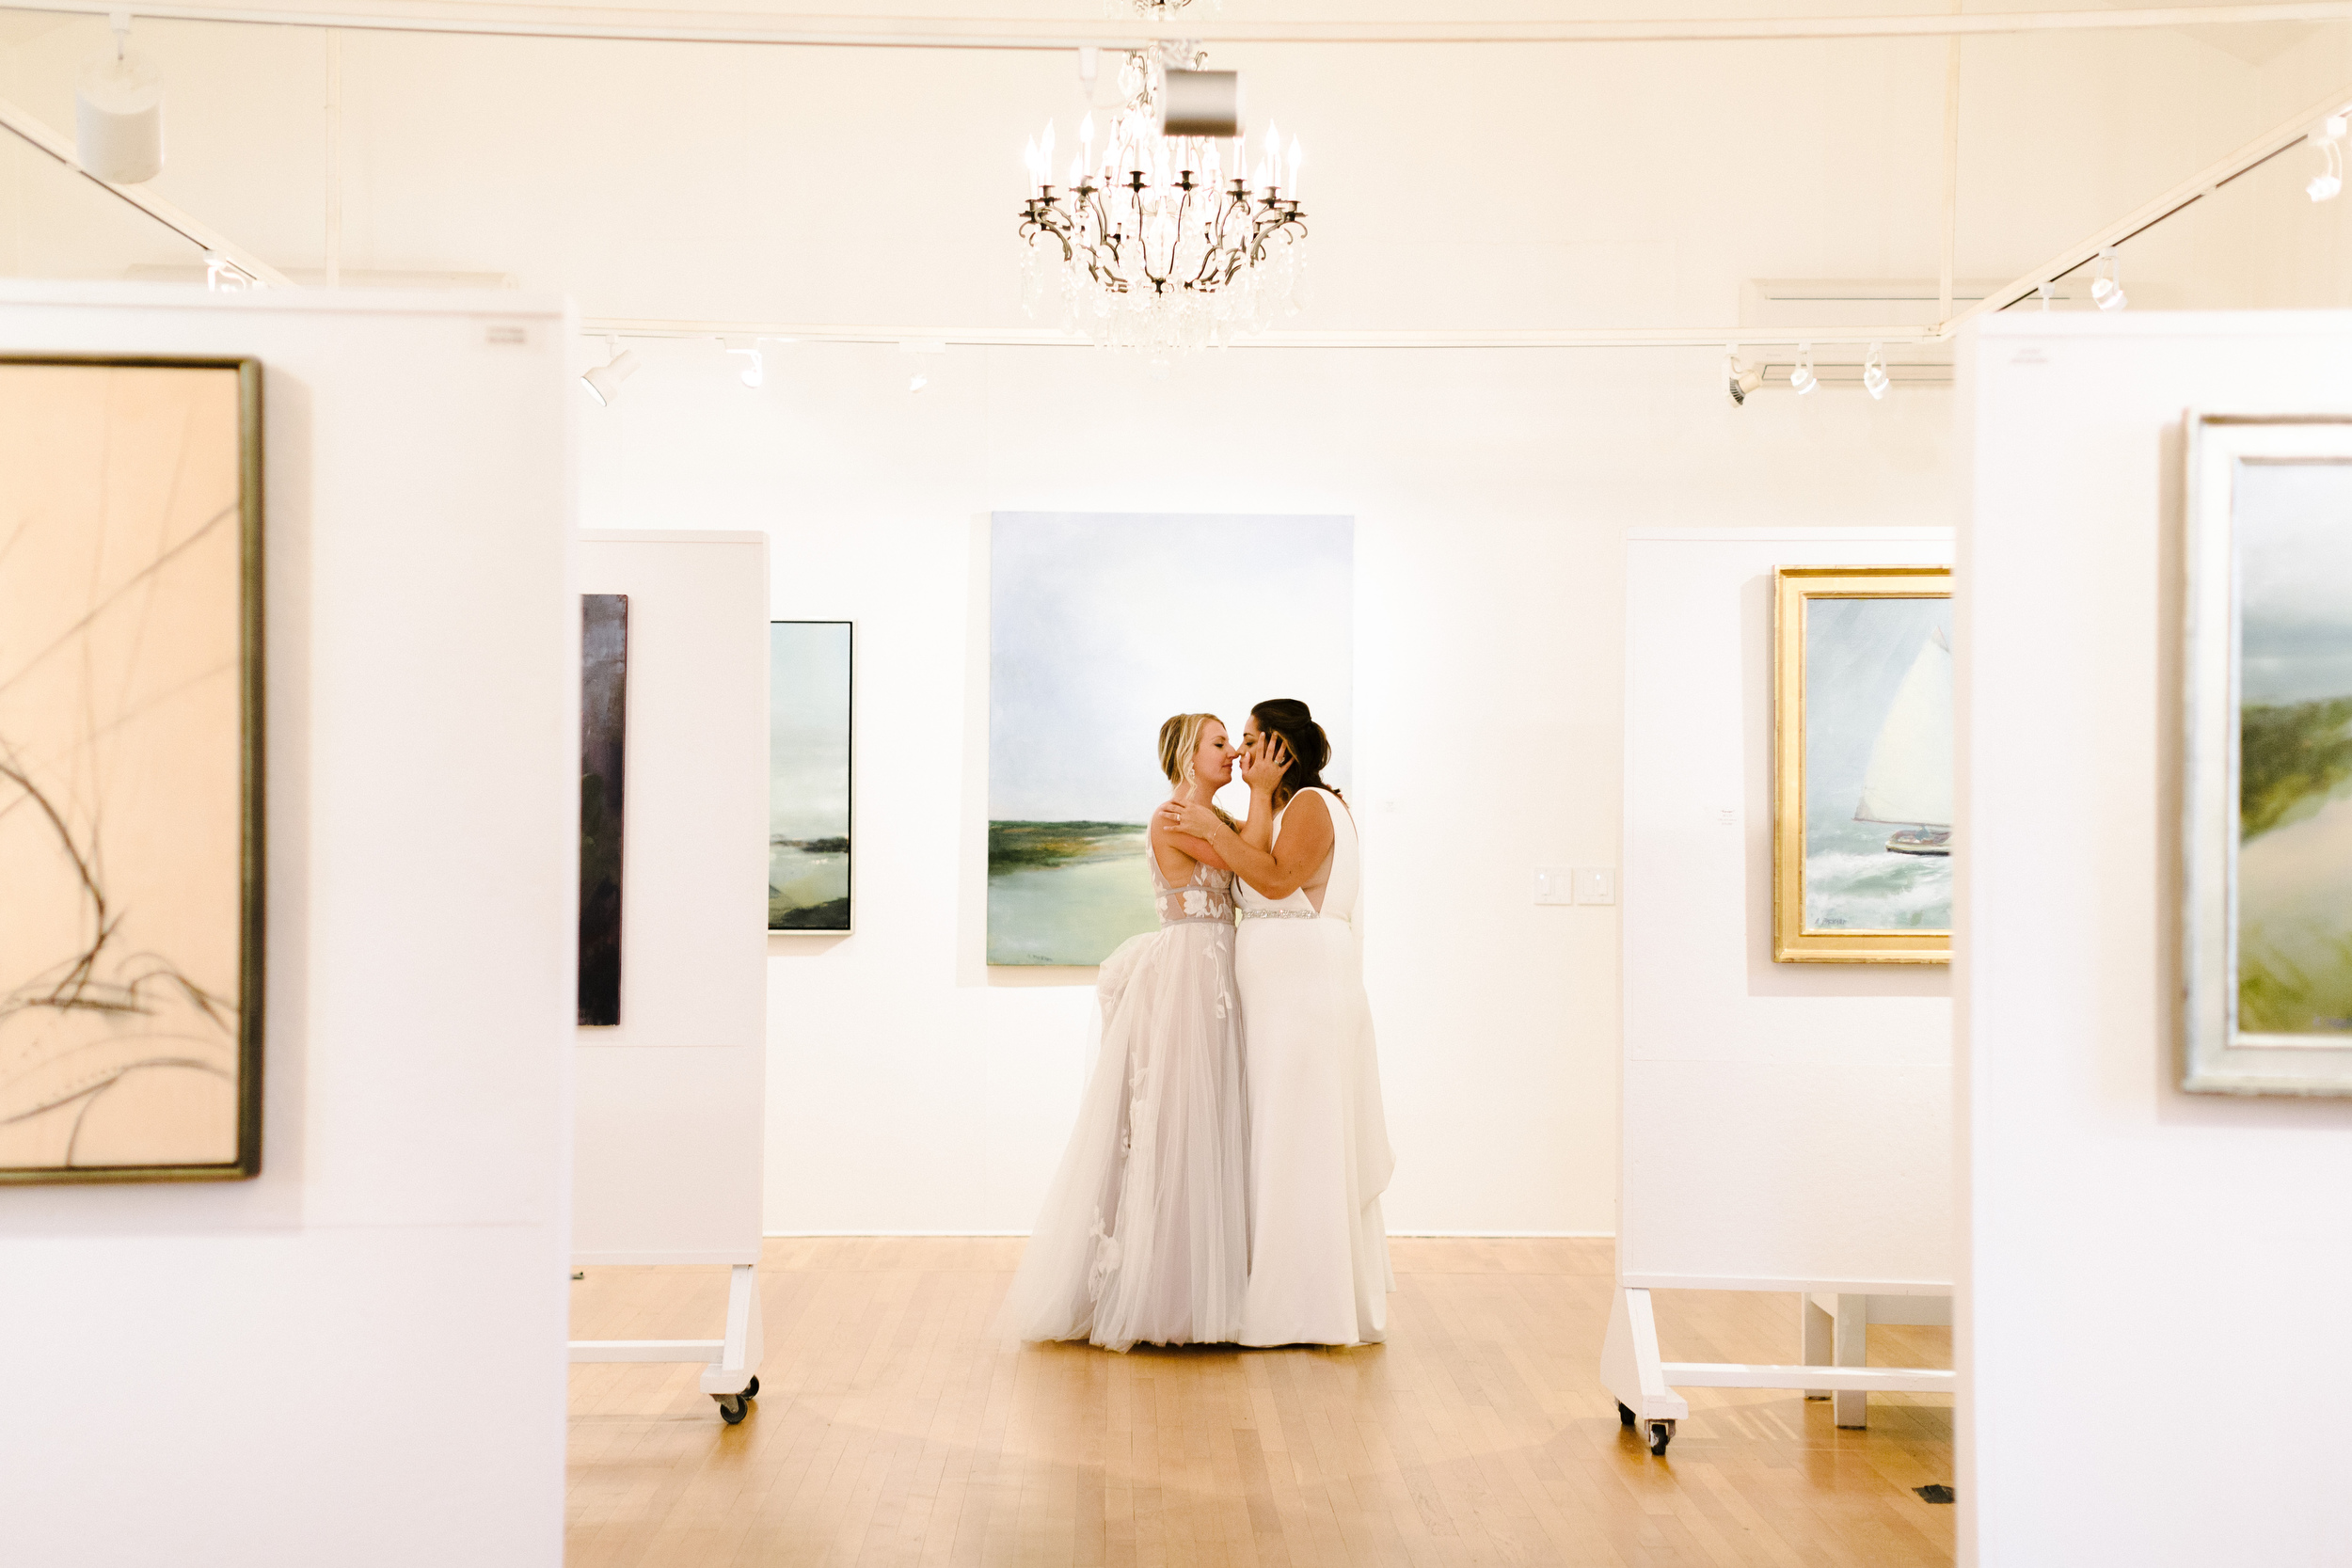 provincetown art gallery wedding ceremony with two beautiful same -sex brides